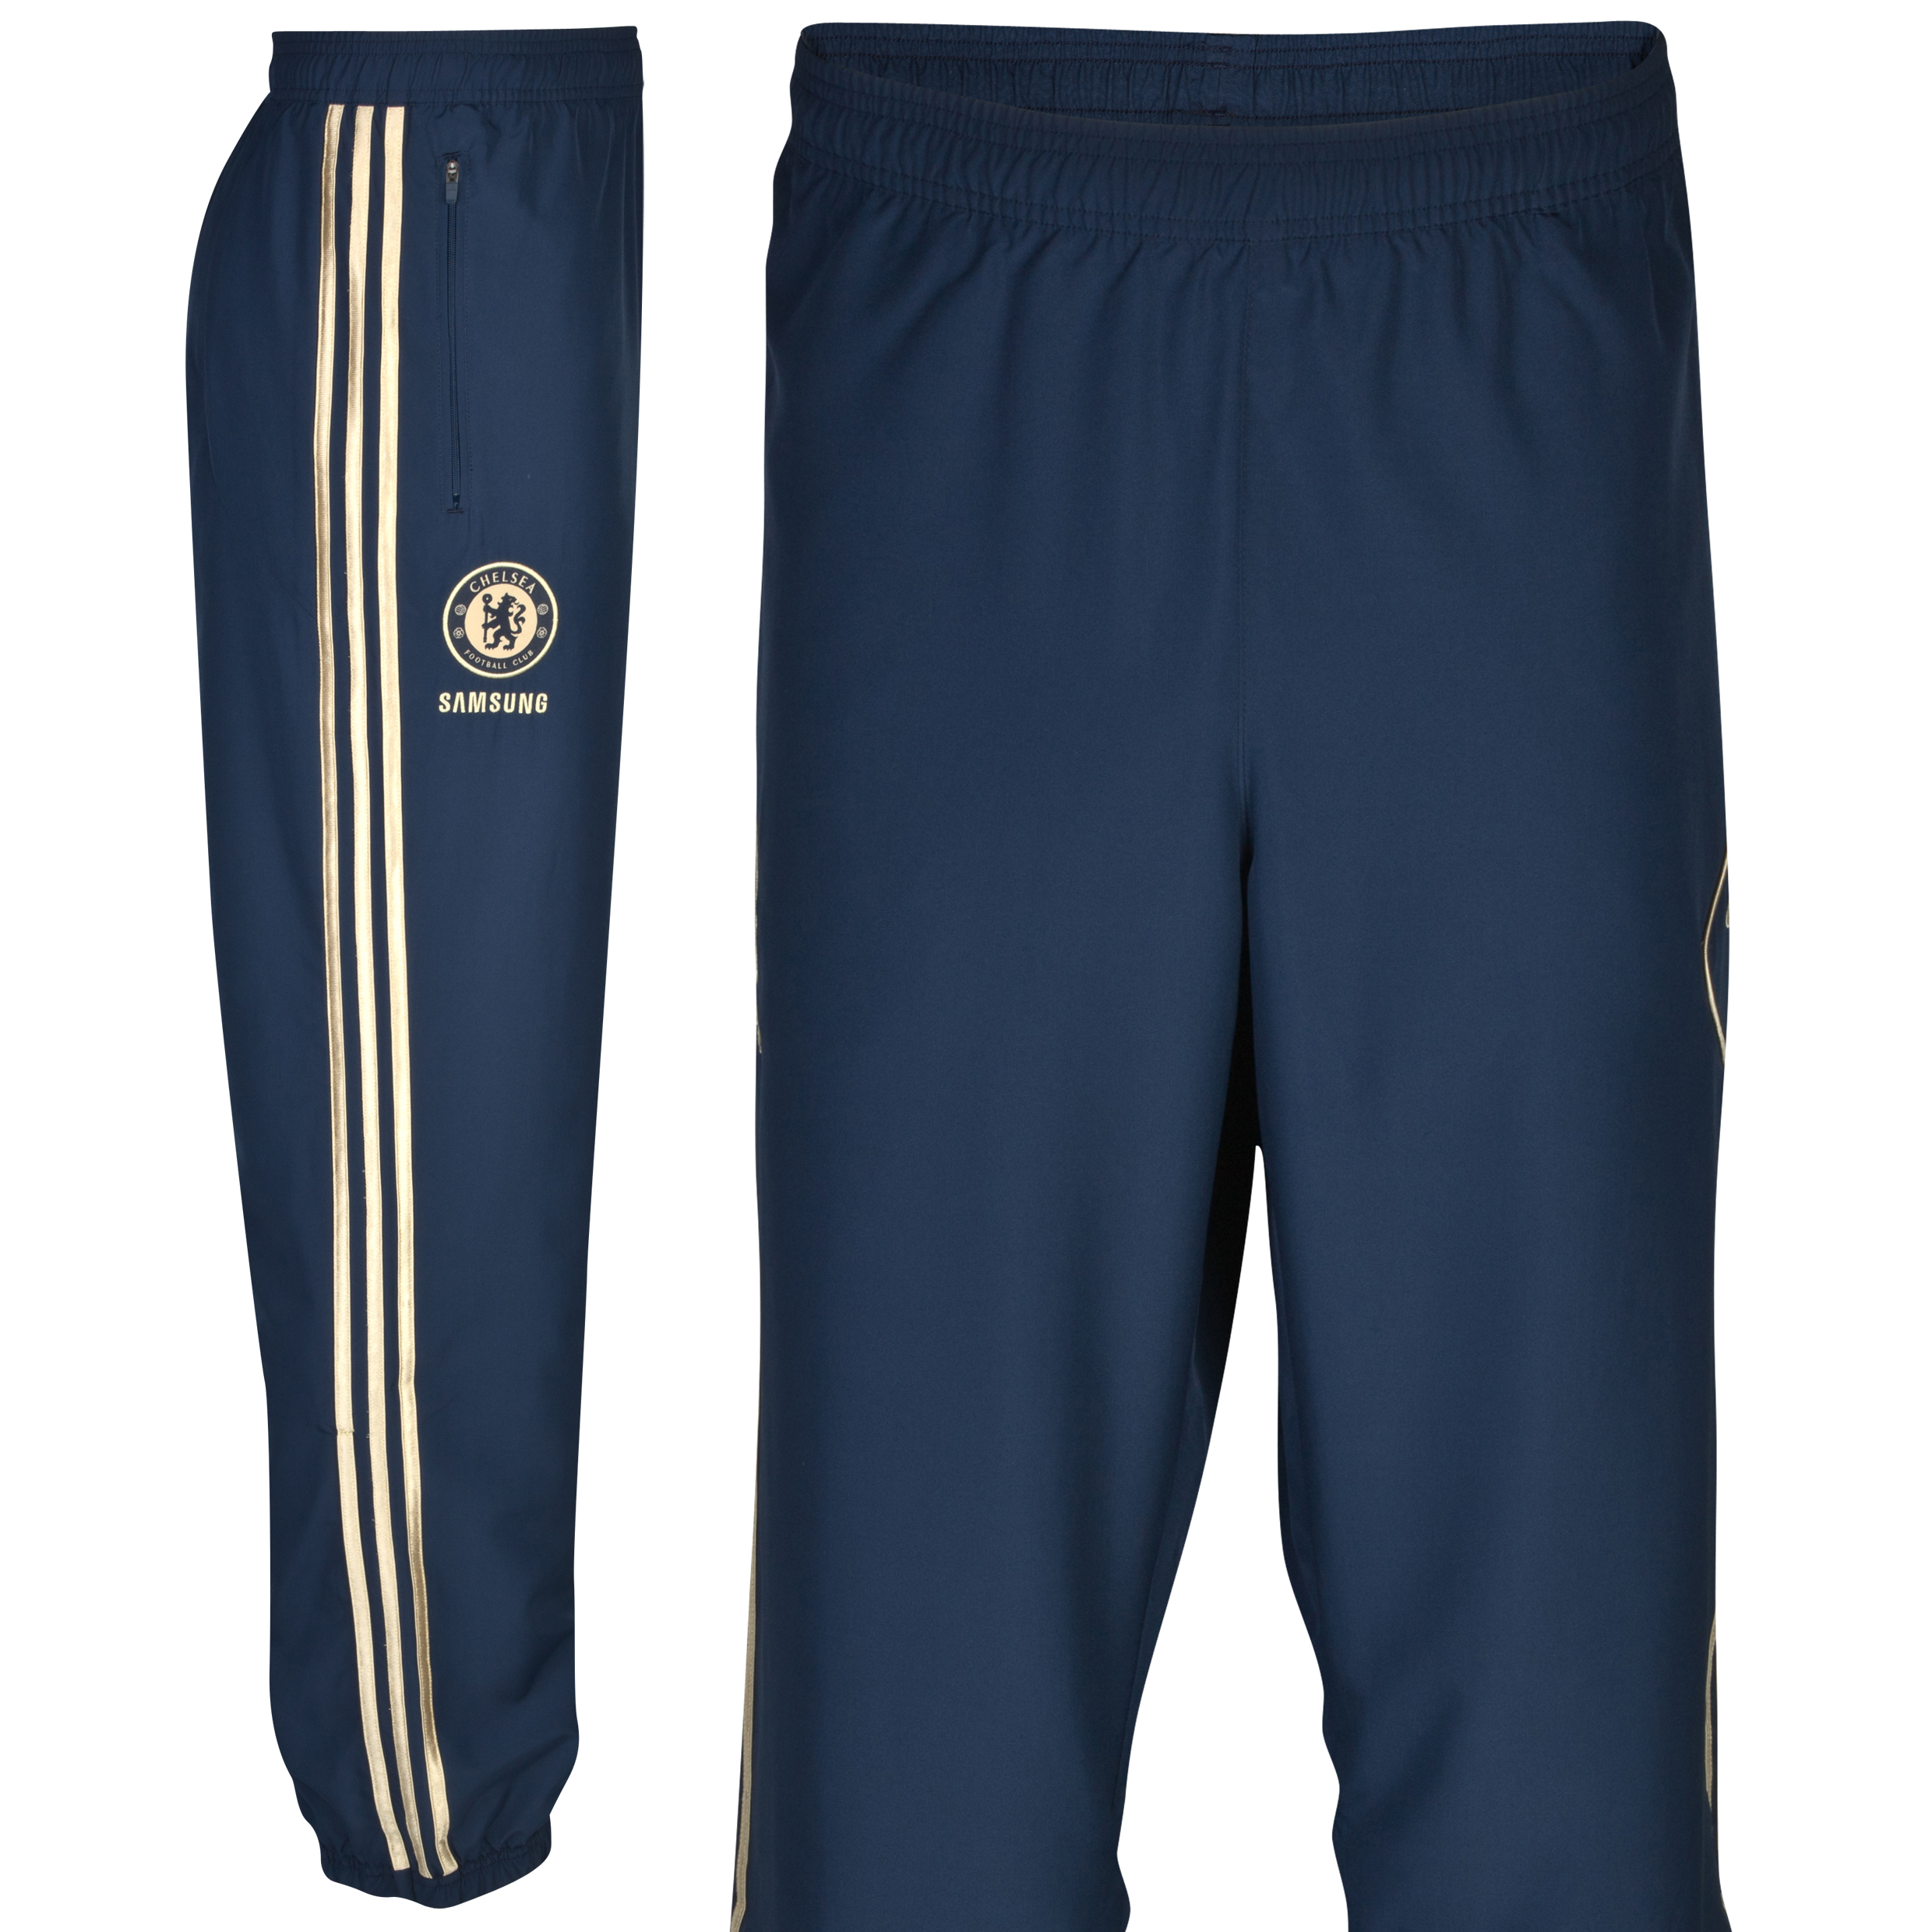 adidas Chelsea Training Presentation Pant - Collegiate Navy/Light Football Gold - Youths